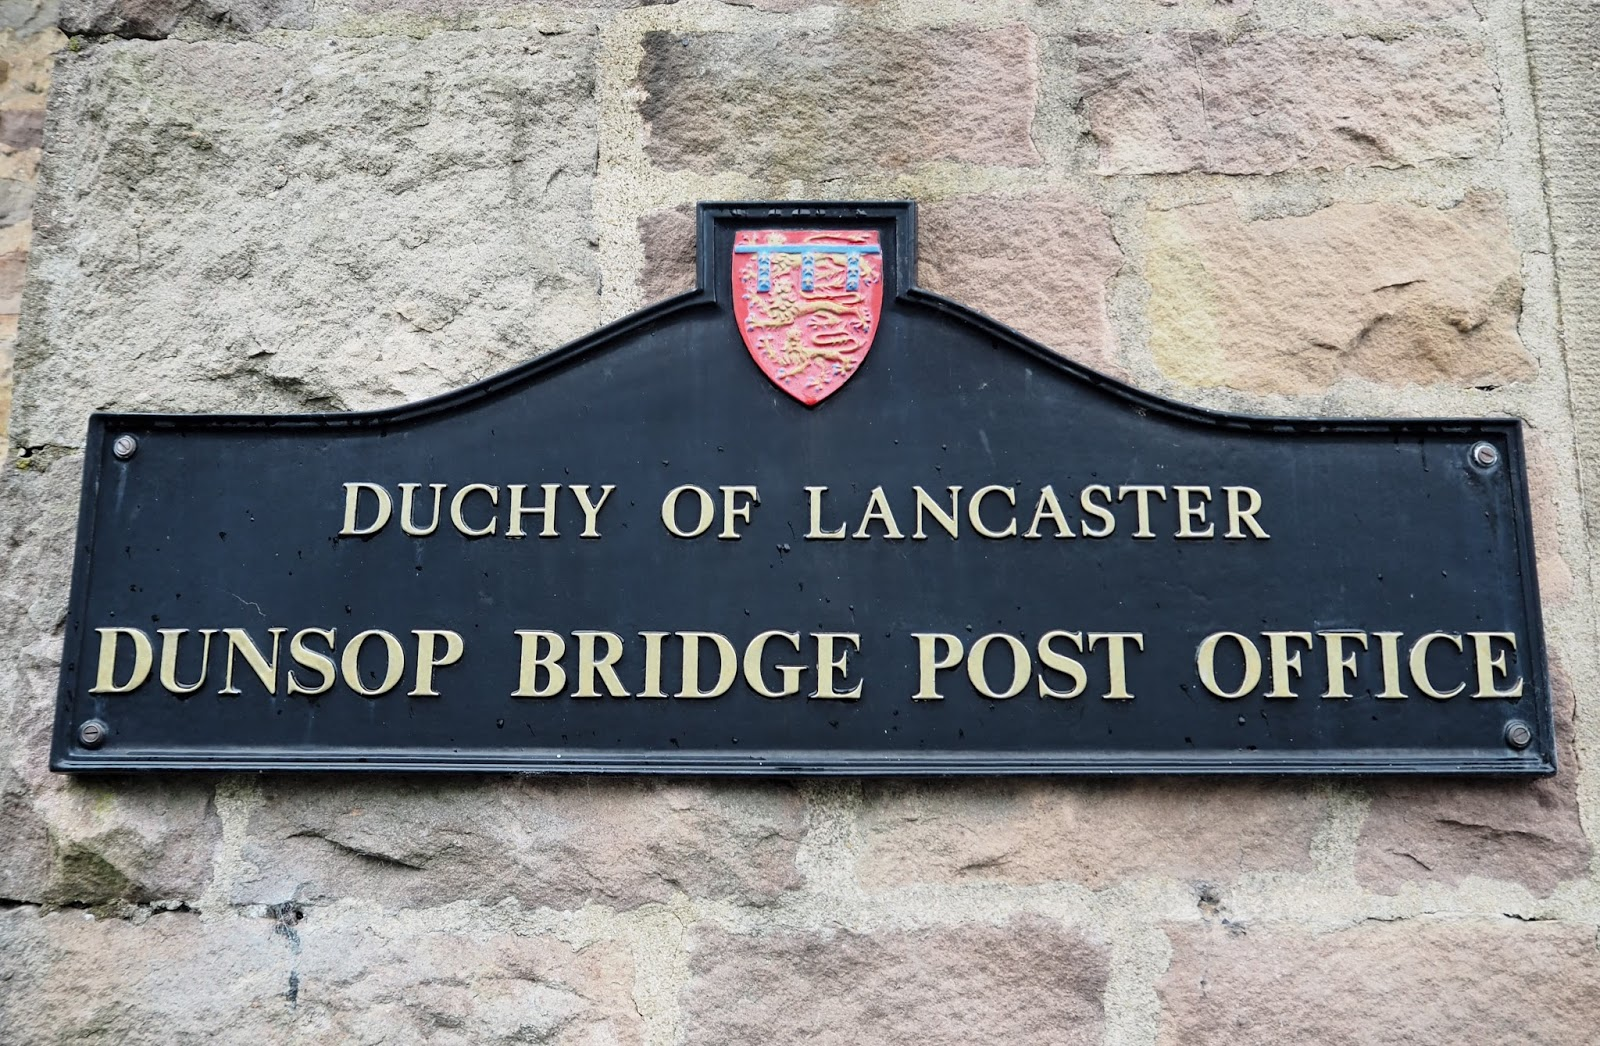 Dunsop Bridge post office